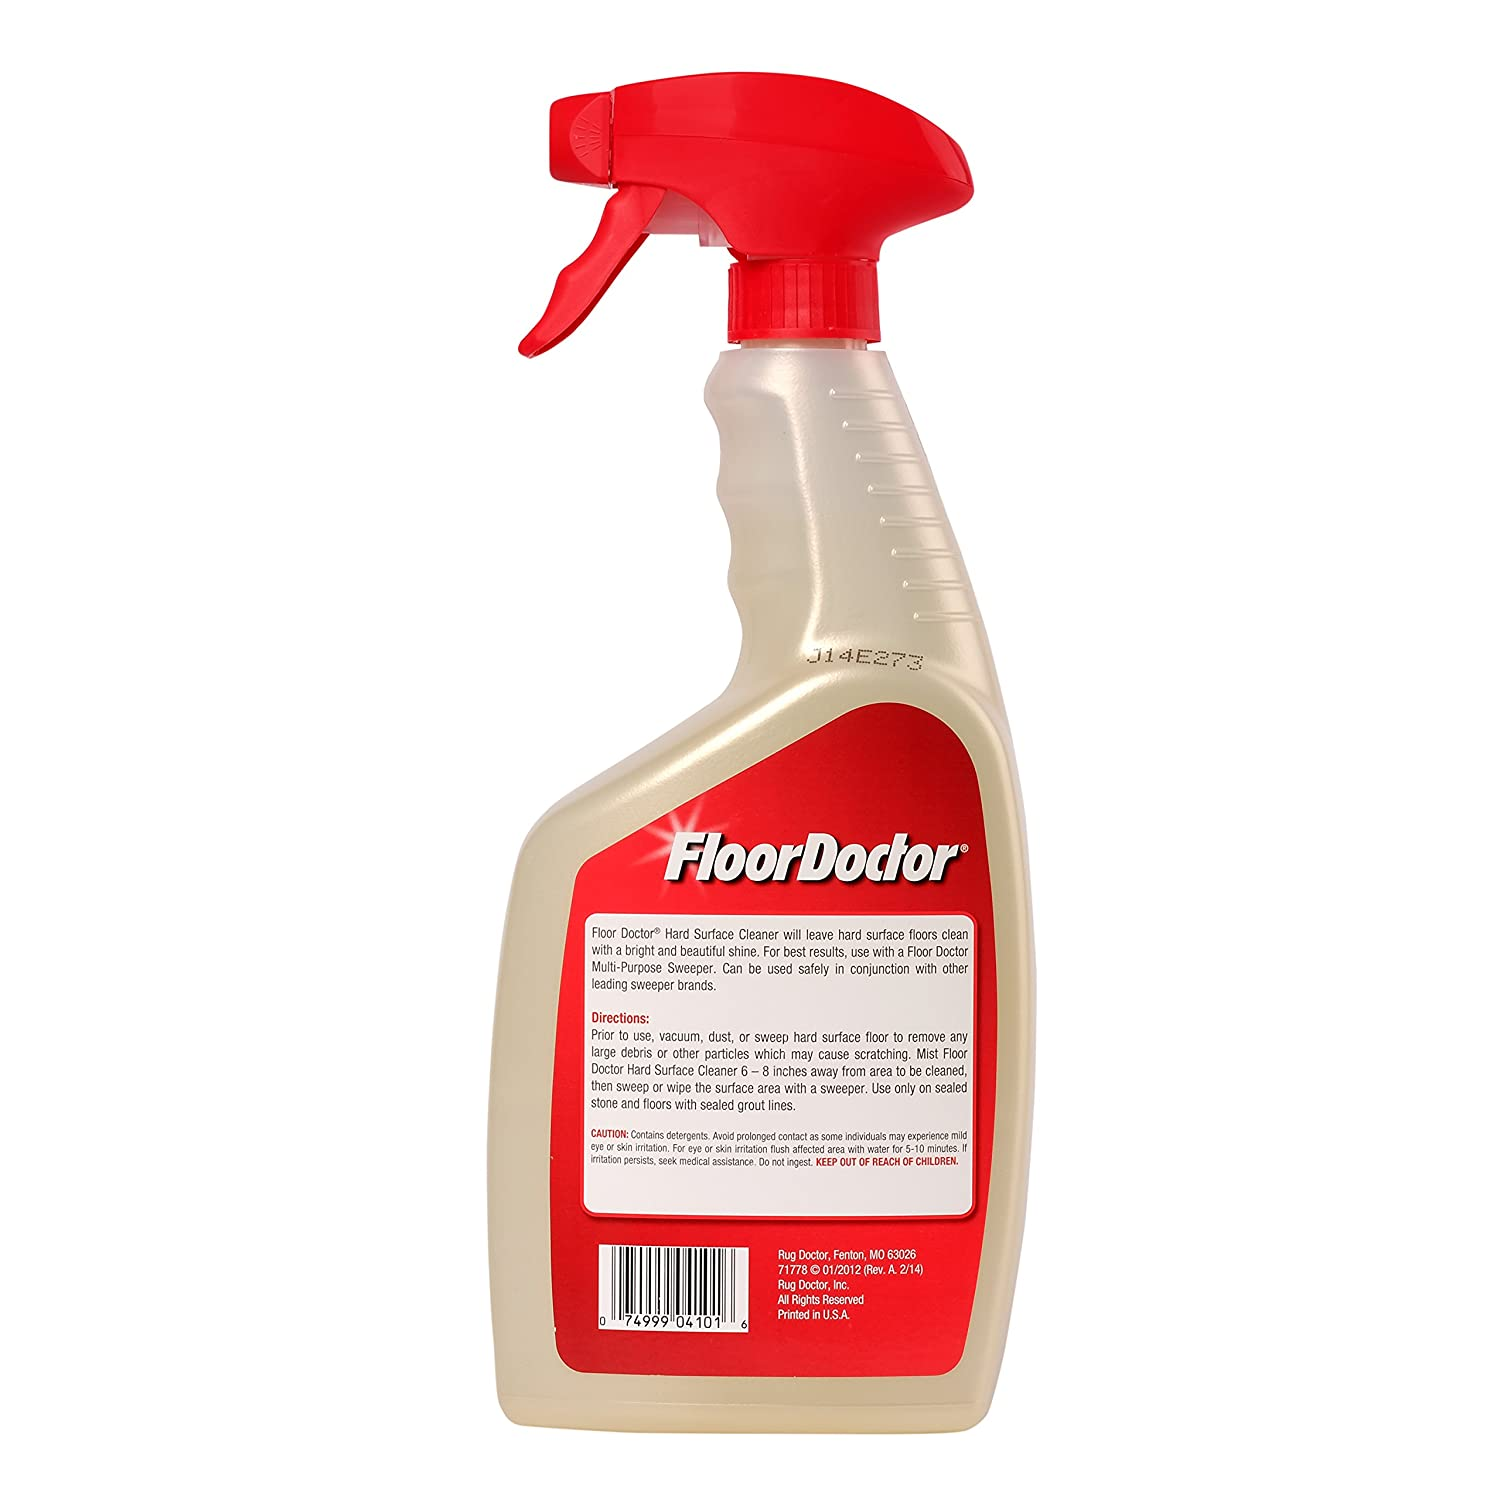 Amazon.com: Floor Doctor Hard Surface Cleaner Spray, Refreshes Hard Surface  Flooring While Extracting Tough Dirt And Grime, Results In Bright And Clean  ...